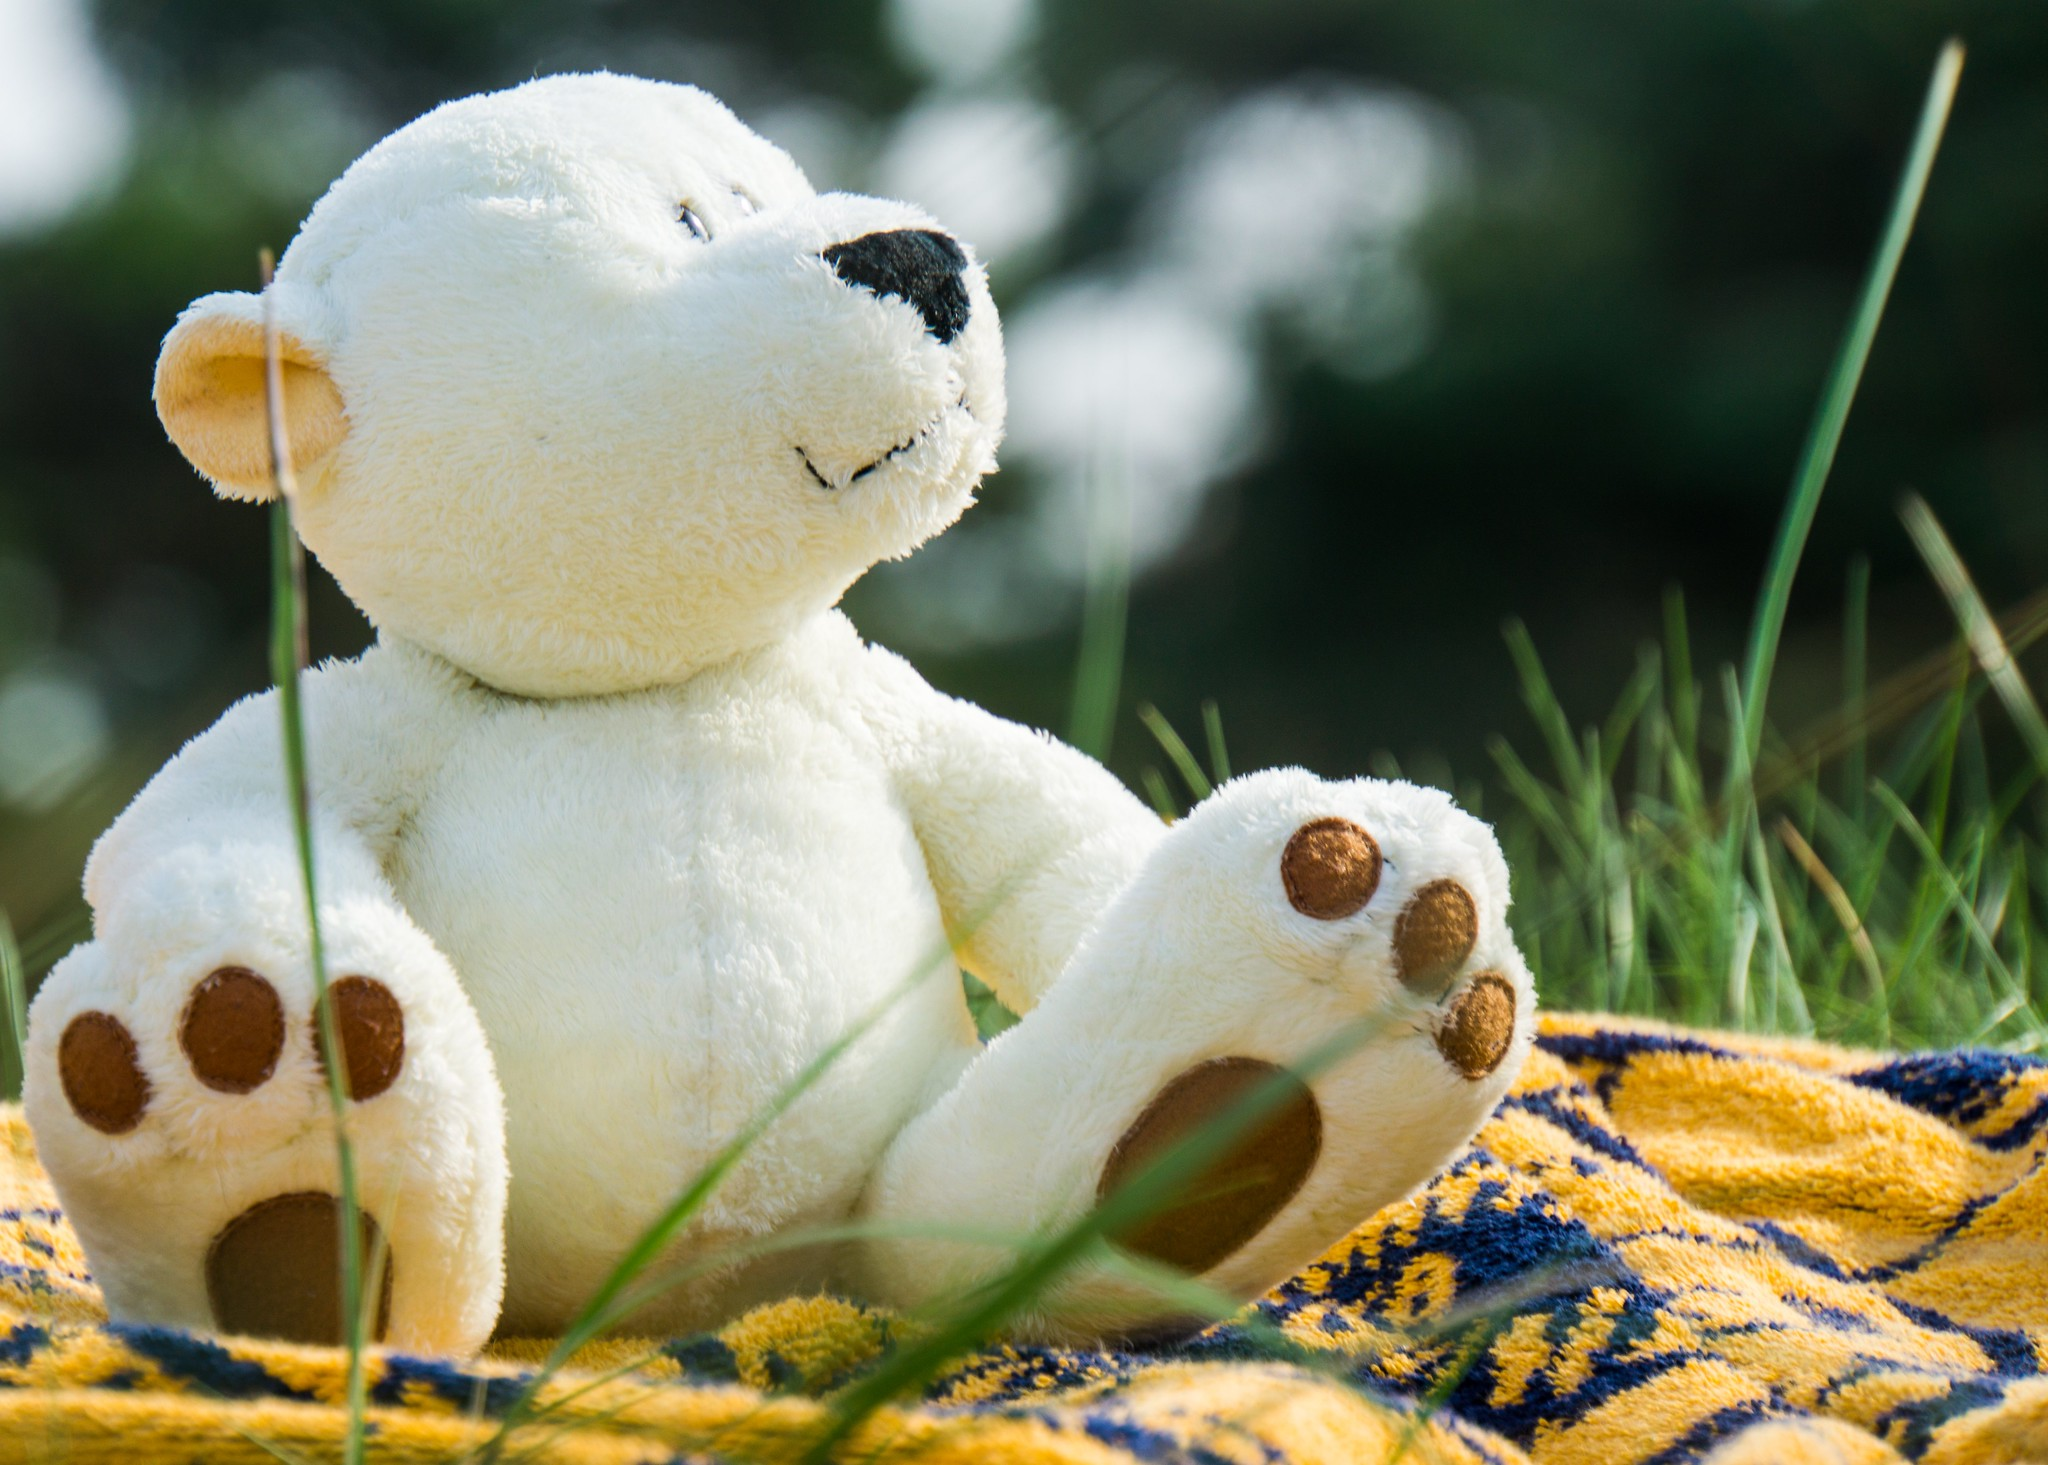 teddy bear on a picnic blanket